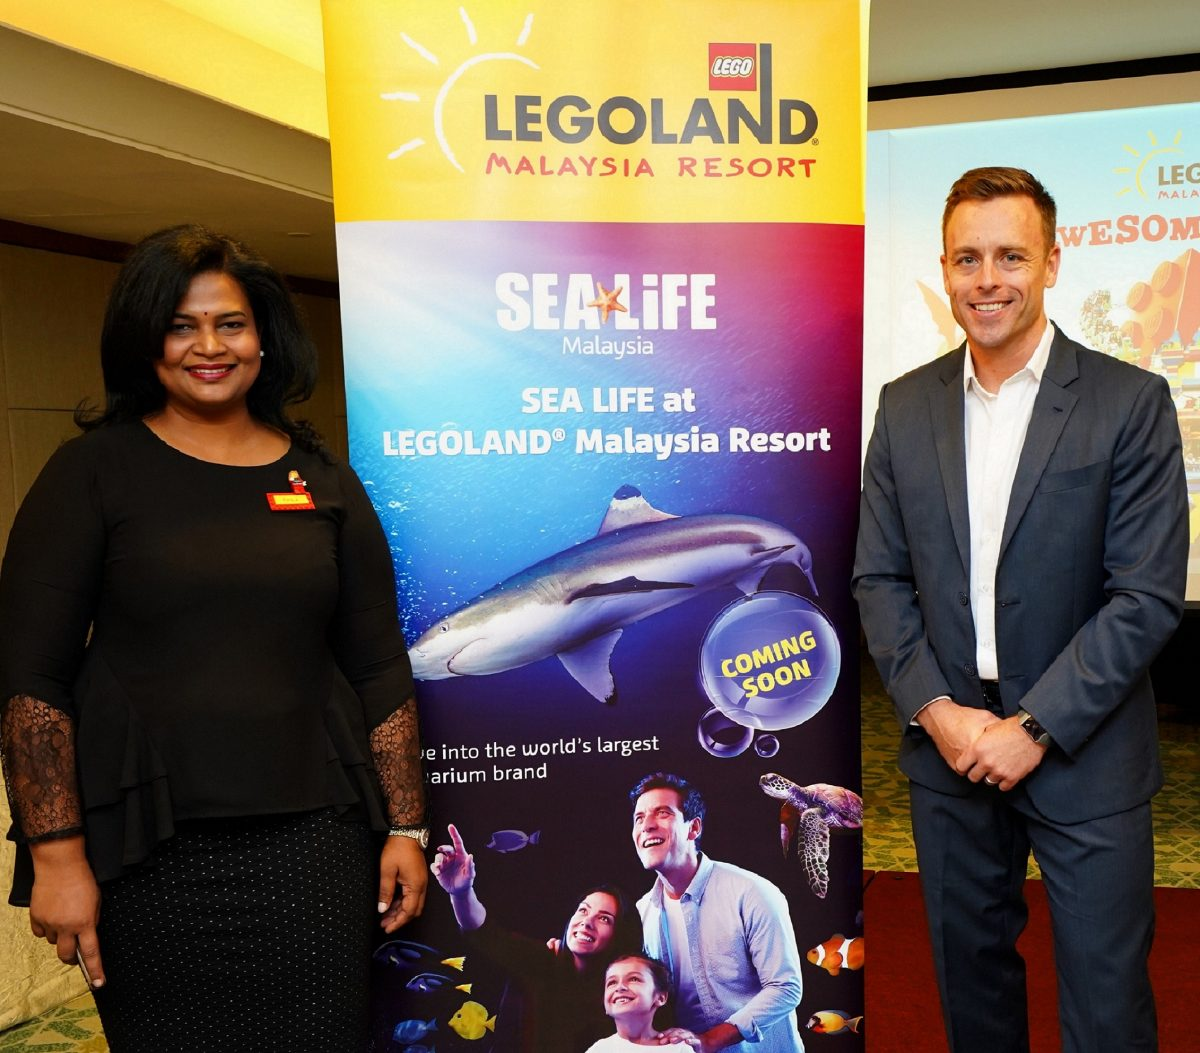 LEGOLAND® Malaysia Resort Offers a Wholesome Family Experience in 2019